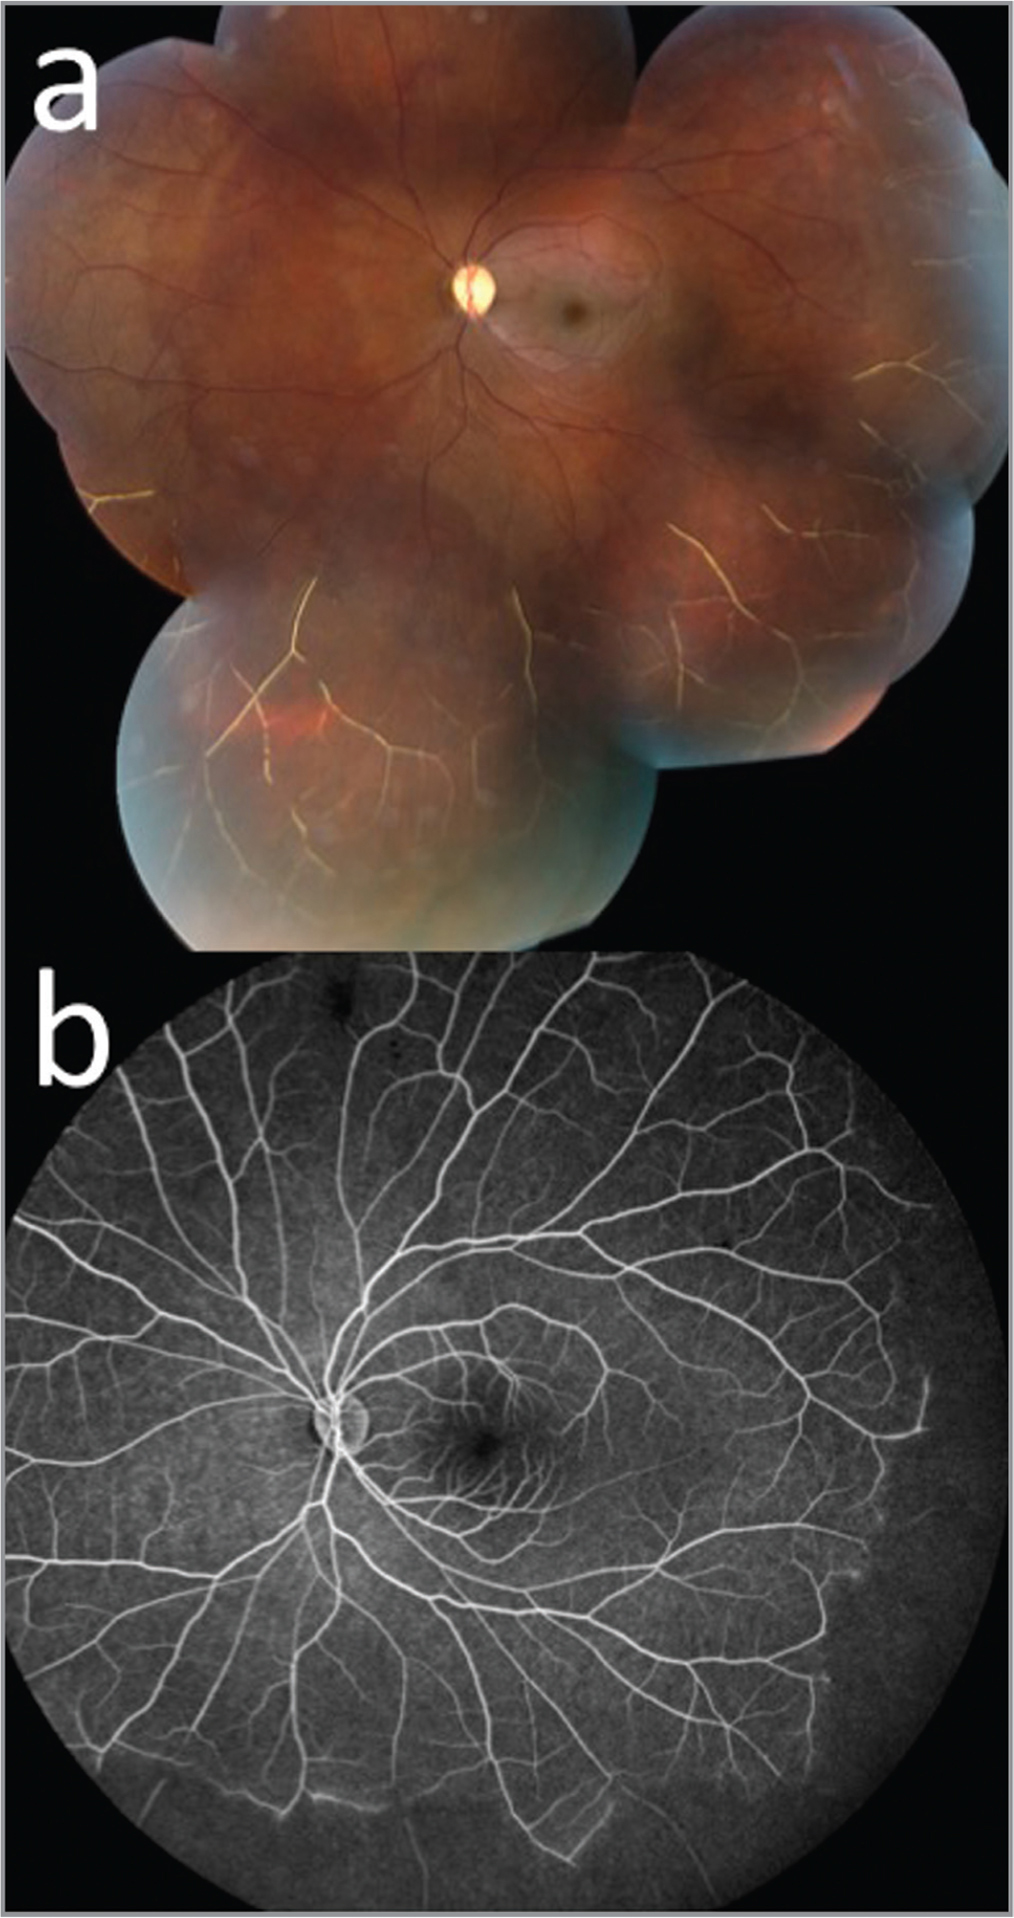 Fundus photo (a) and fluorescein angiography (b) of a 22-year-old male with sickle cell retinopathy with a history of trauma to the left eye.